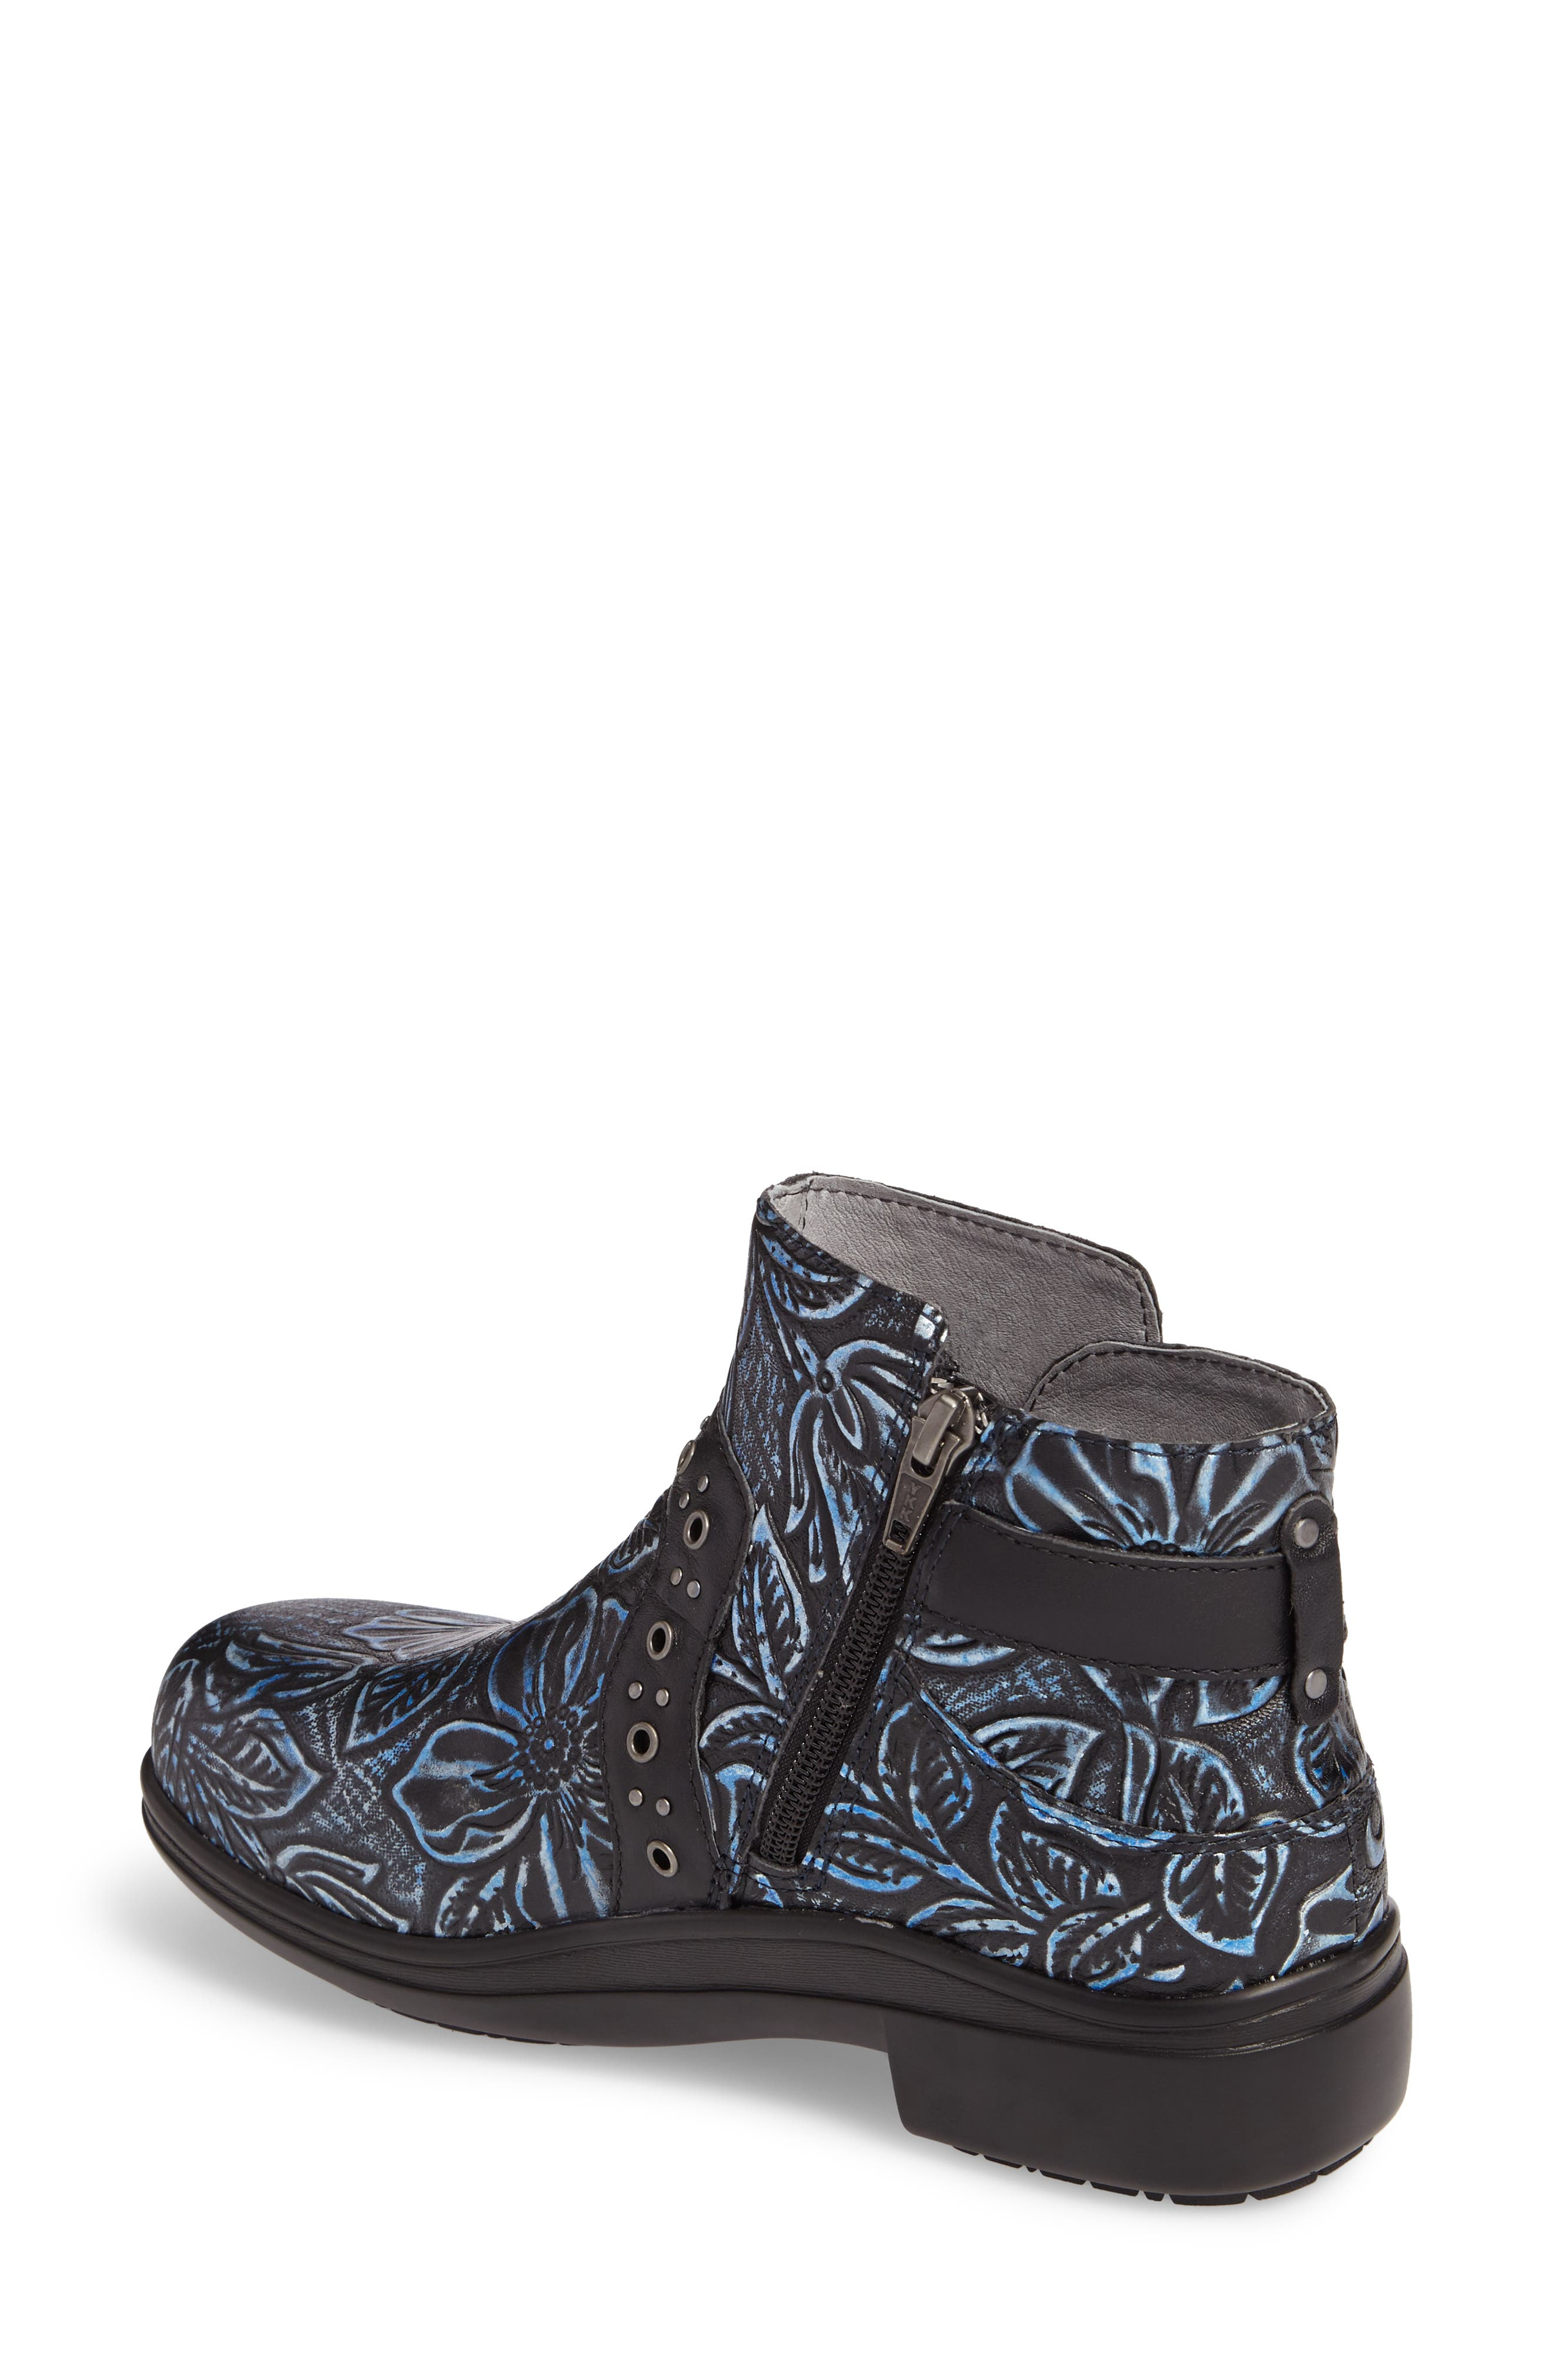 ALEGRIA, Zoey Ankle Boot, Alternate thumbnail 2, color, BLUE ROMANCE LEATHER